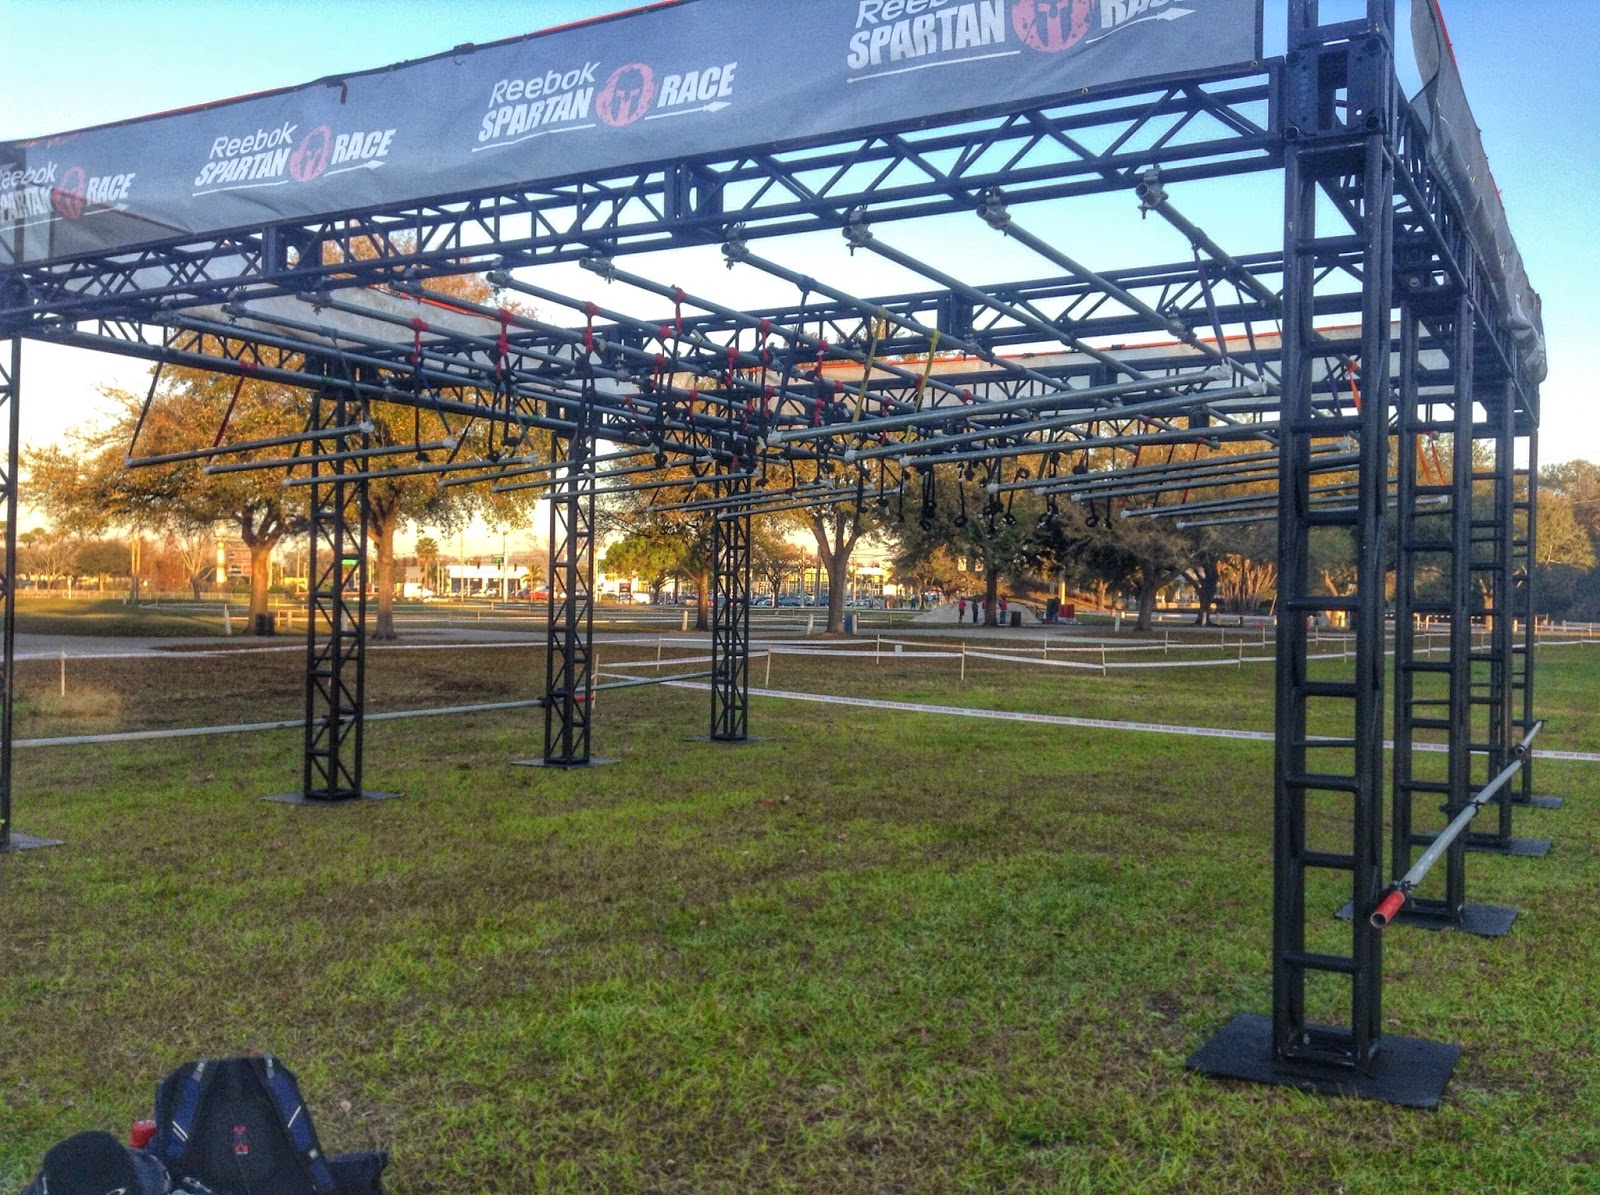 Tampa Special Ops Spartan Sprint - Tampa Spartan Sprint 2015